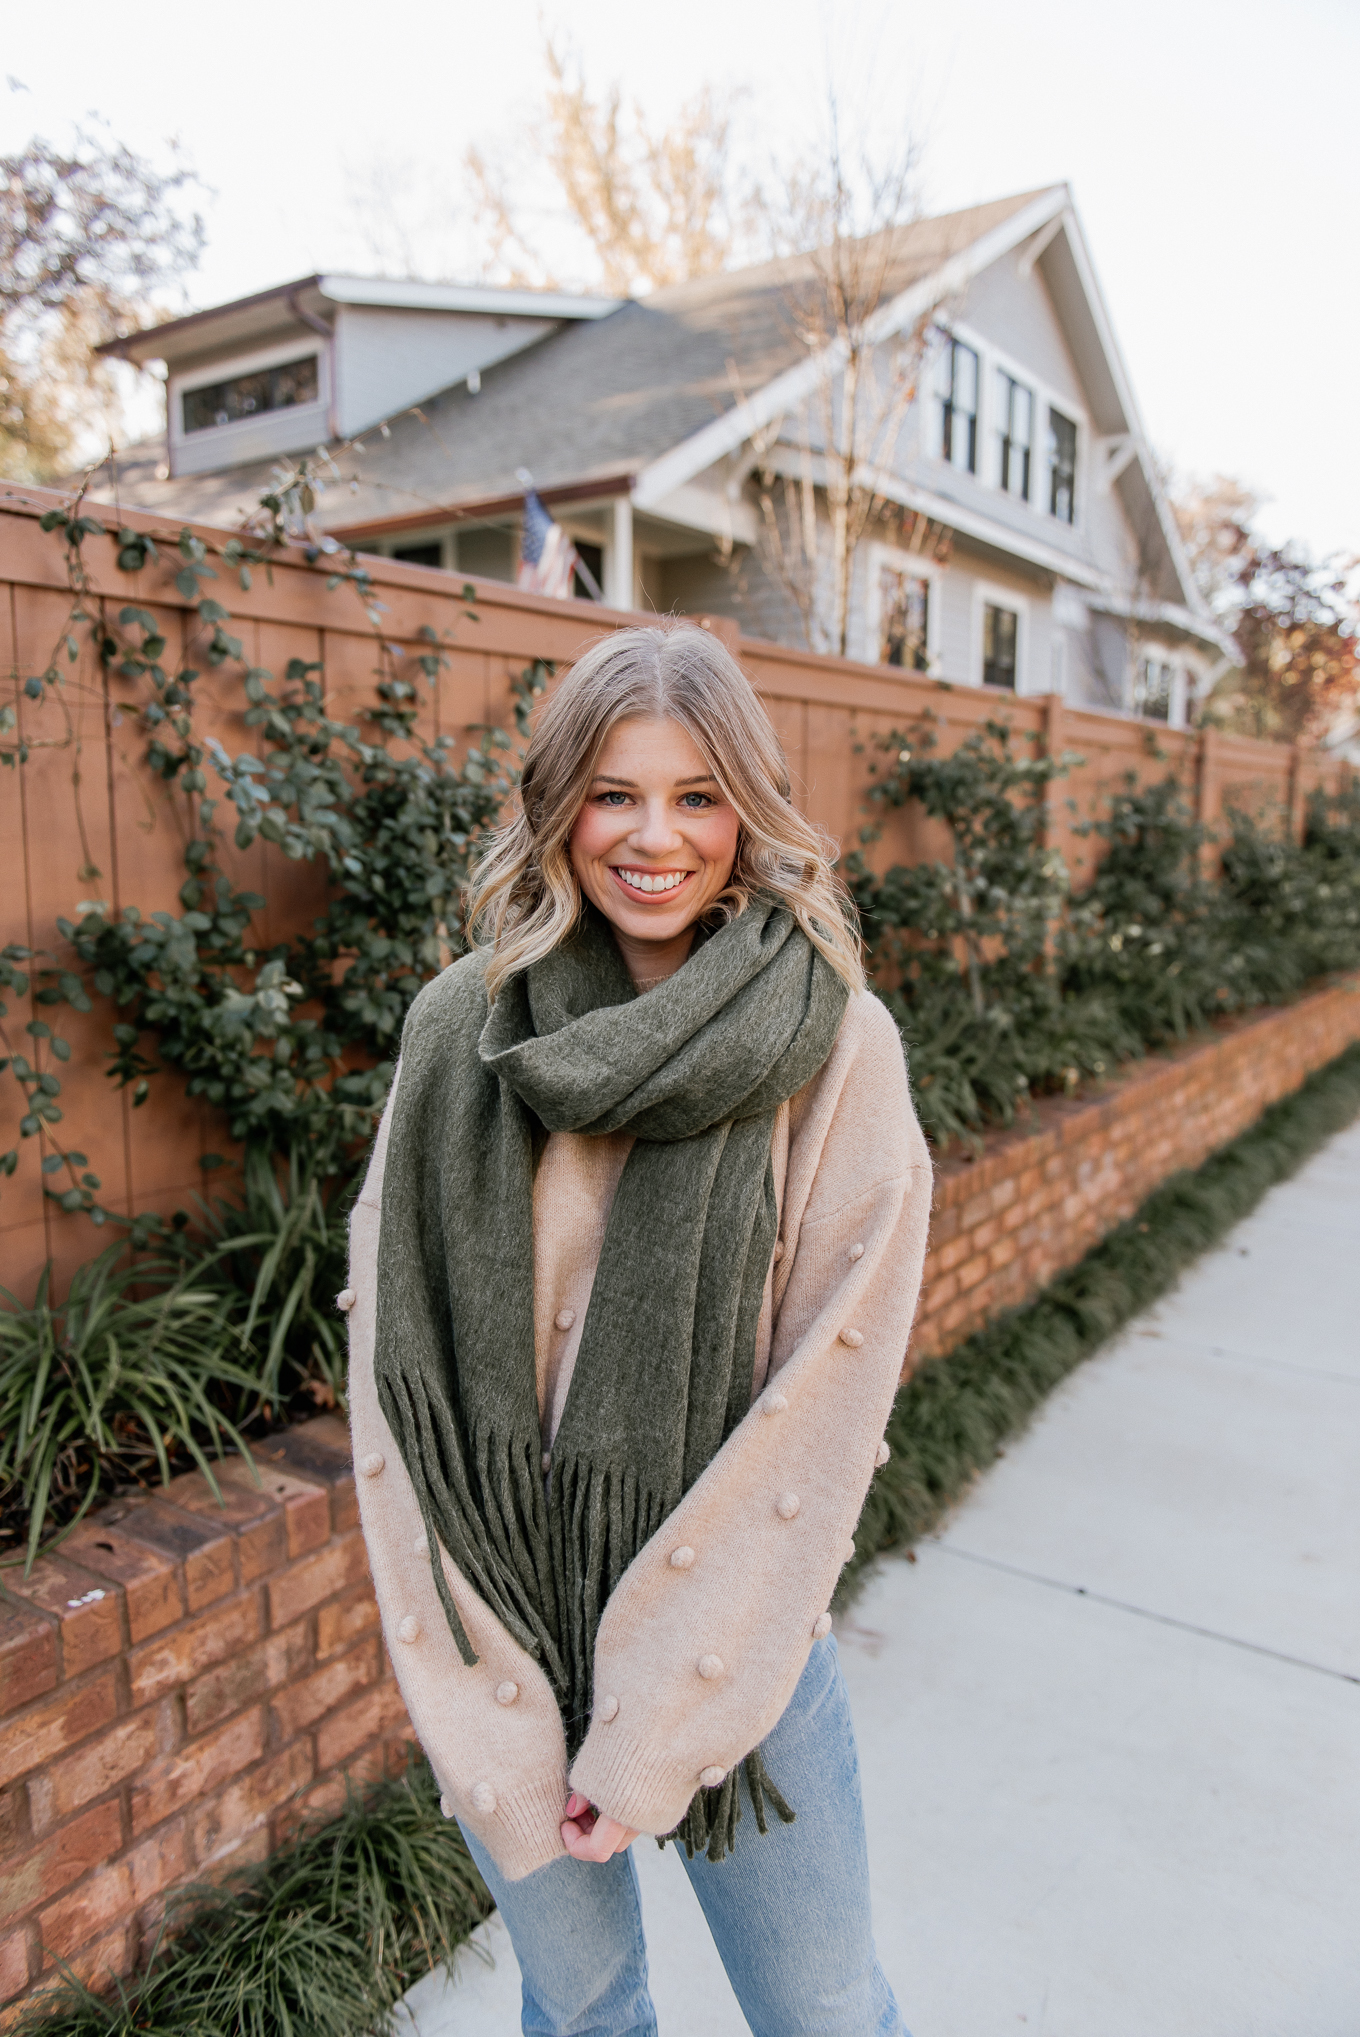 Olive Oversized Scarf, Pom-Pom Sweater | Casual Winter Outfit | Louella Reese